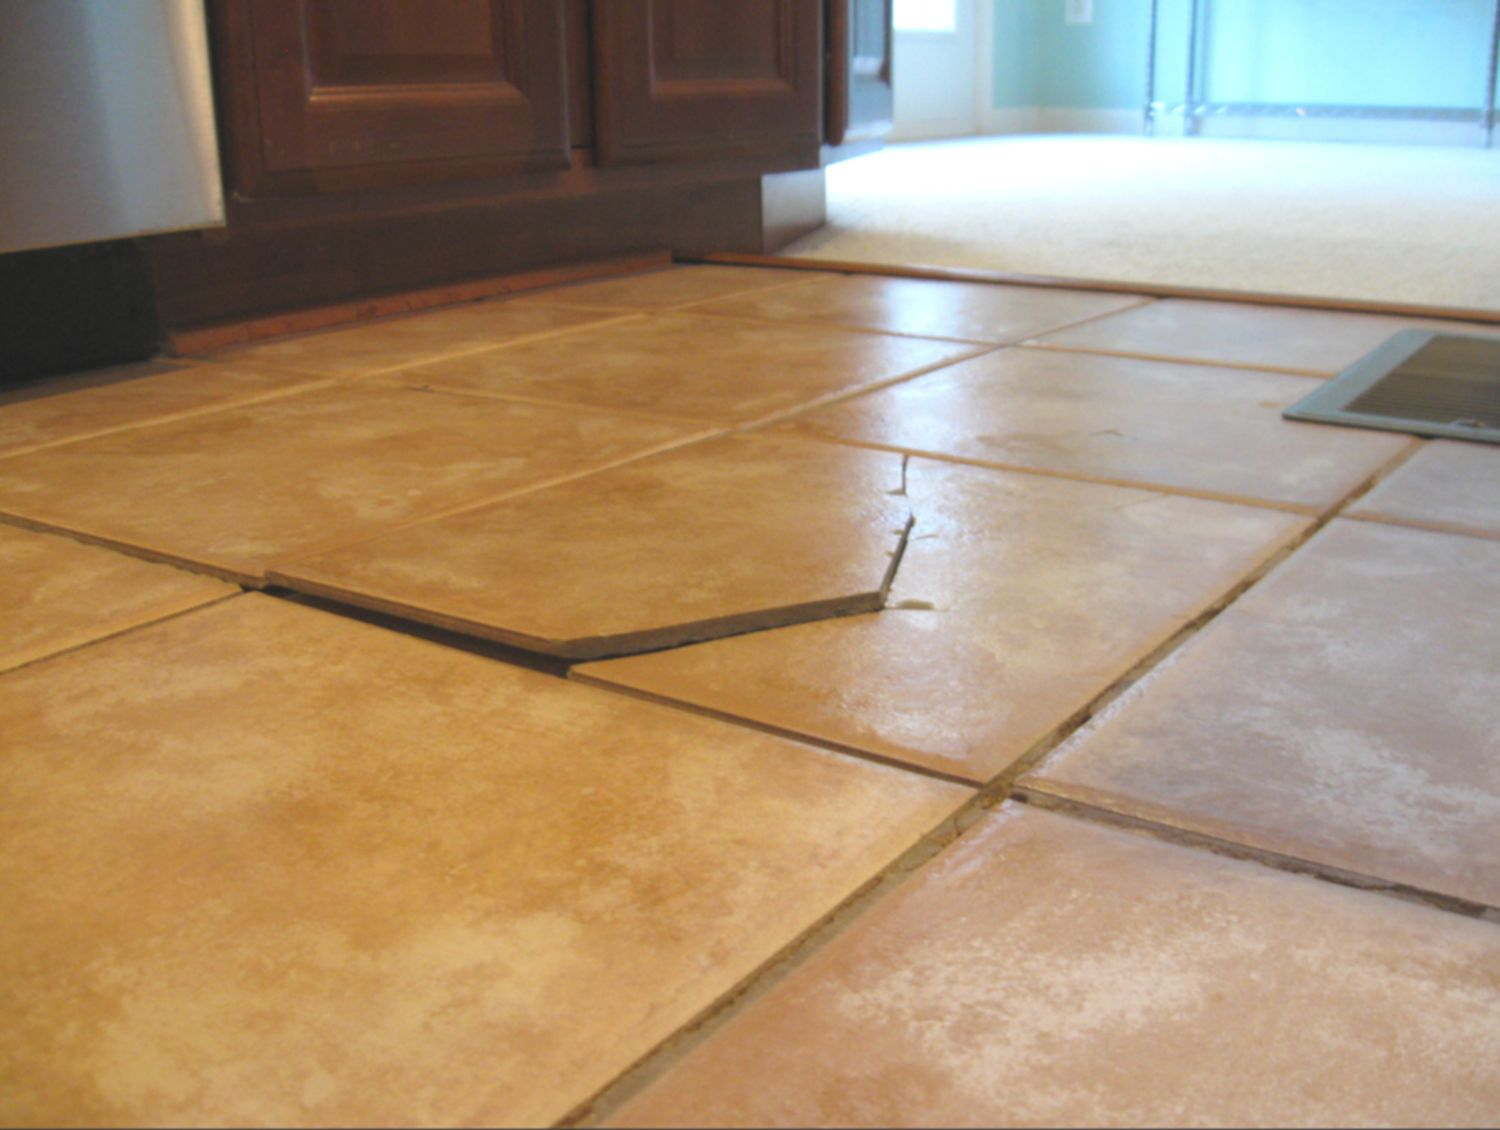 Can i install tile on plywood reasons for cracked tile on floors and walls dailygadgetfo Choice Image